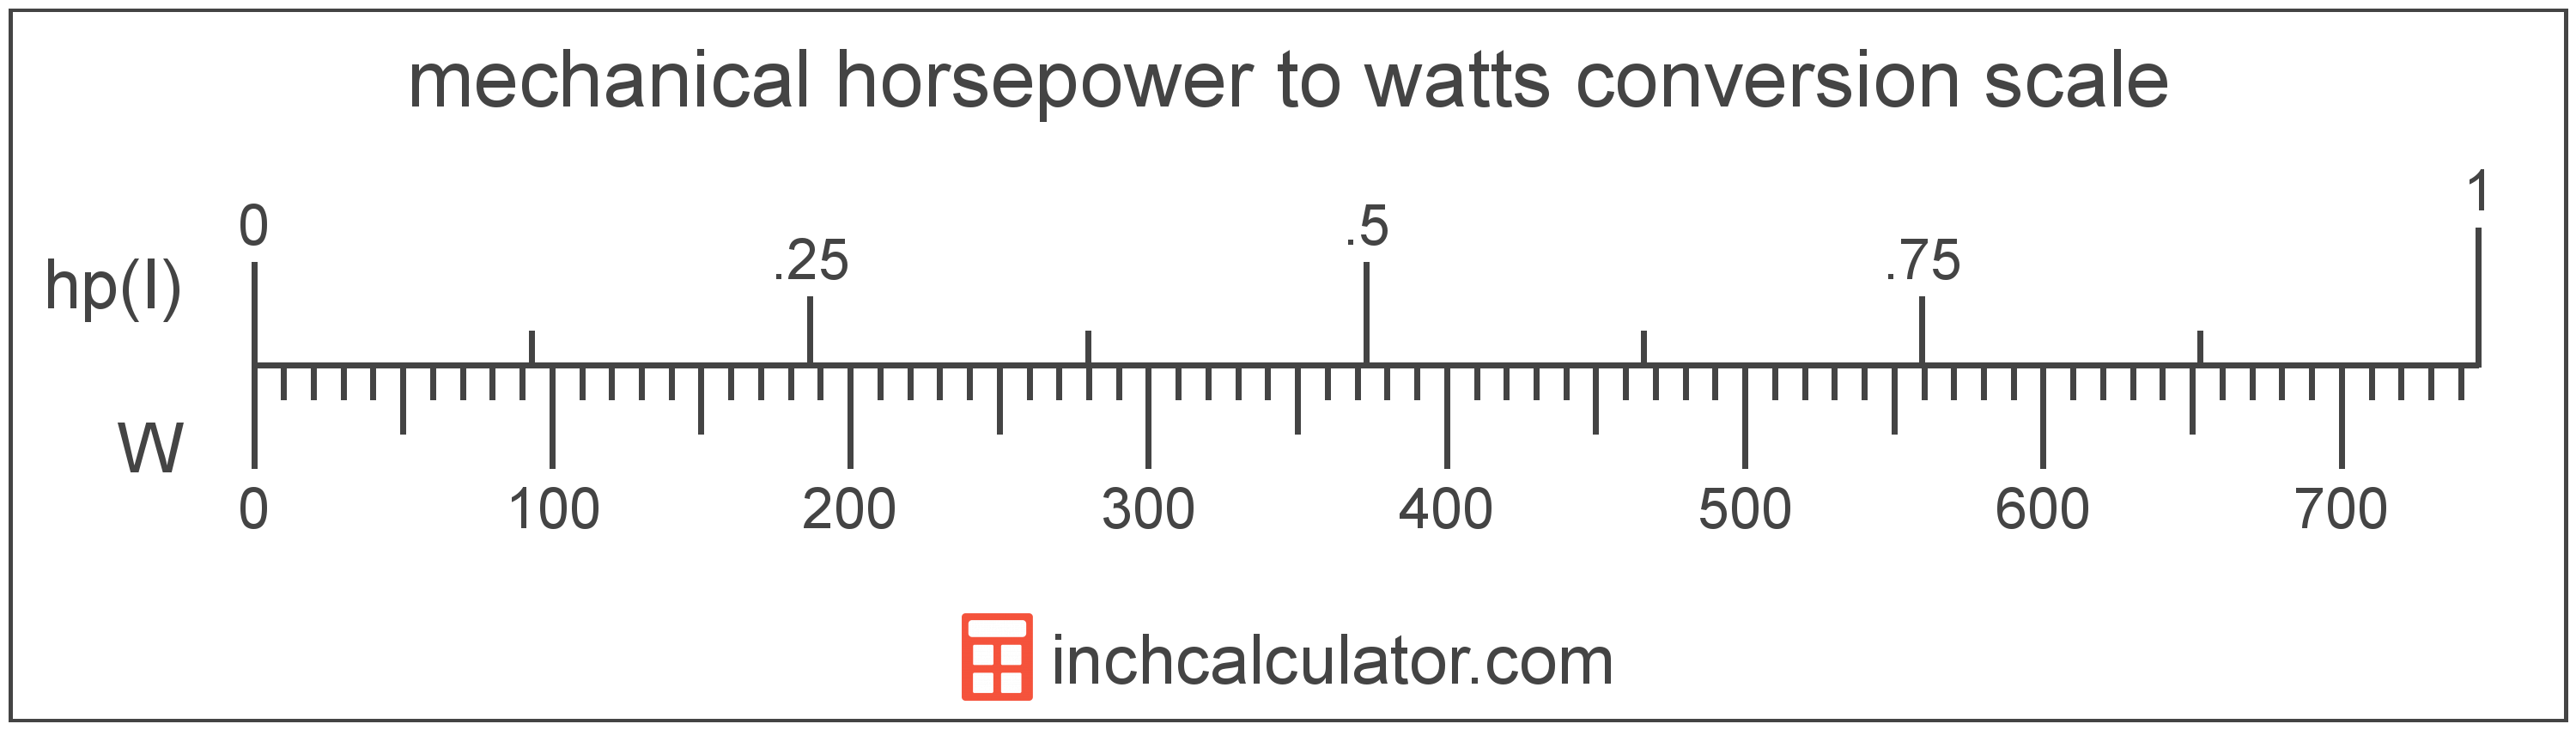 conversion scale showing watts and equivalent mechanical horsepower power values